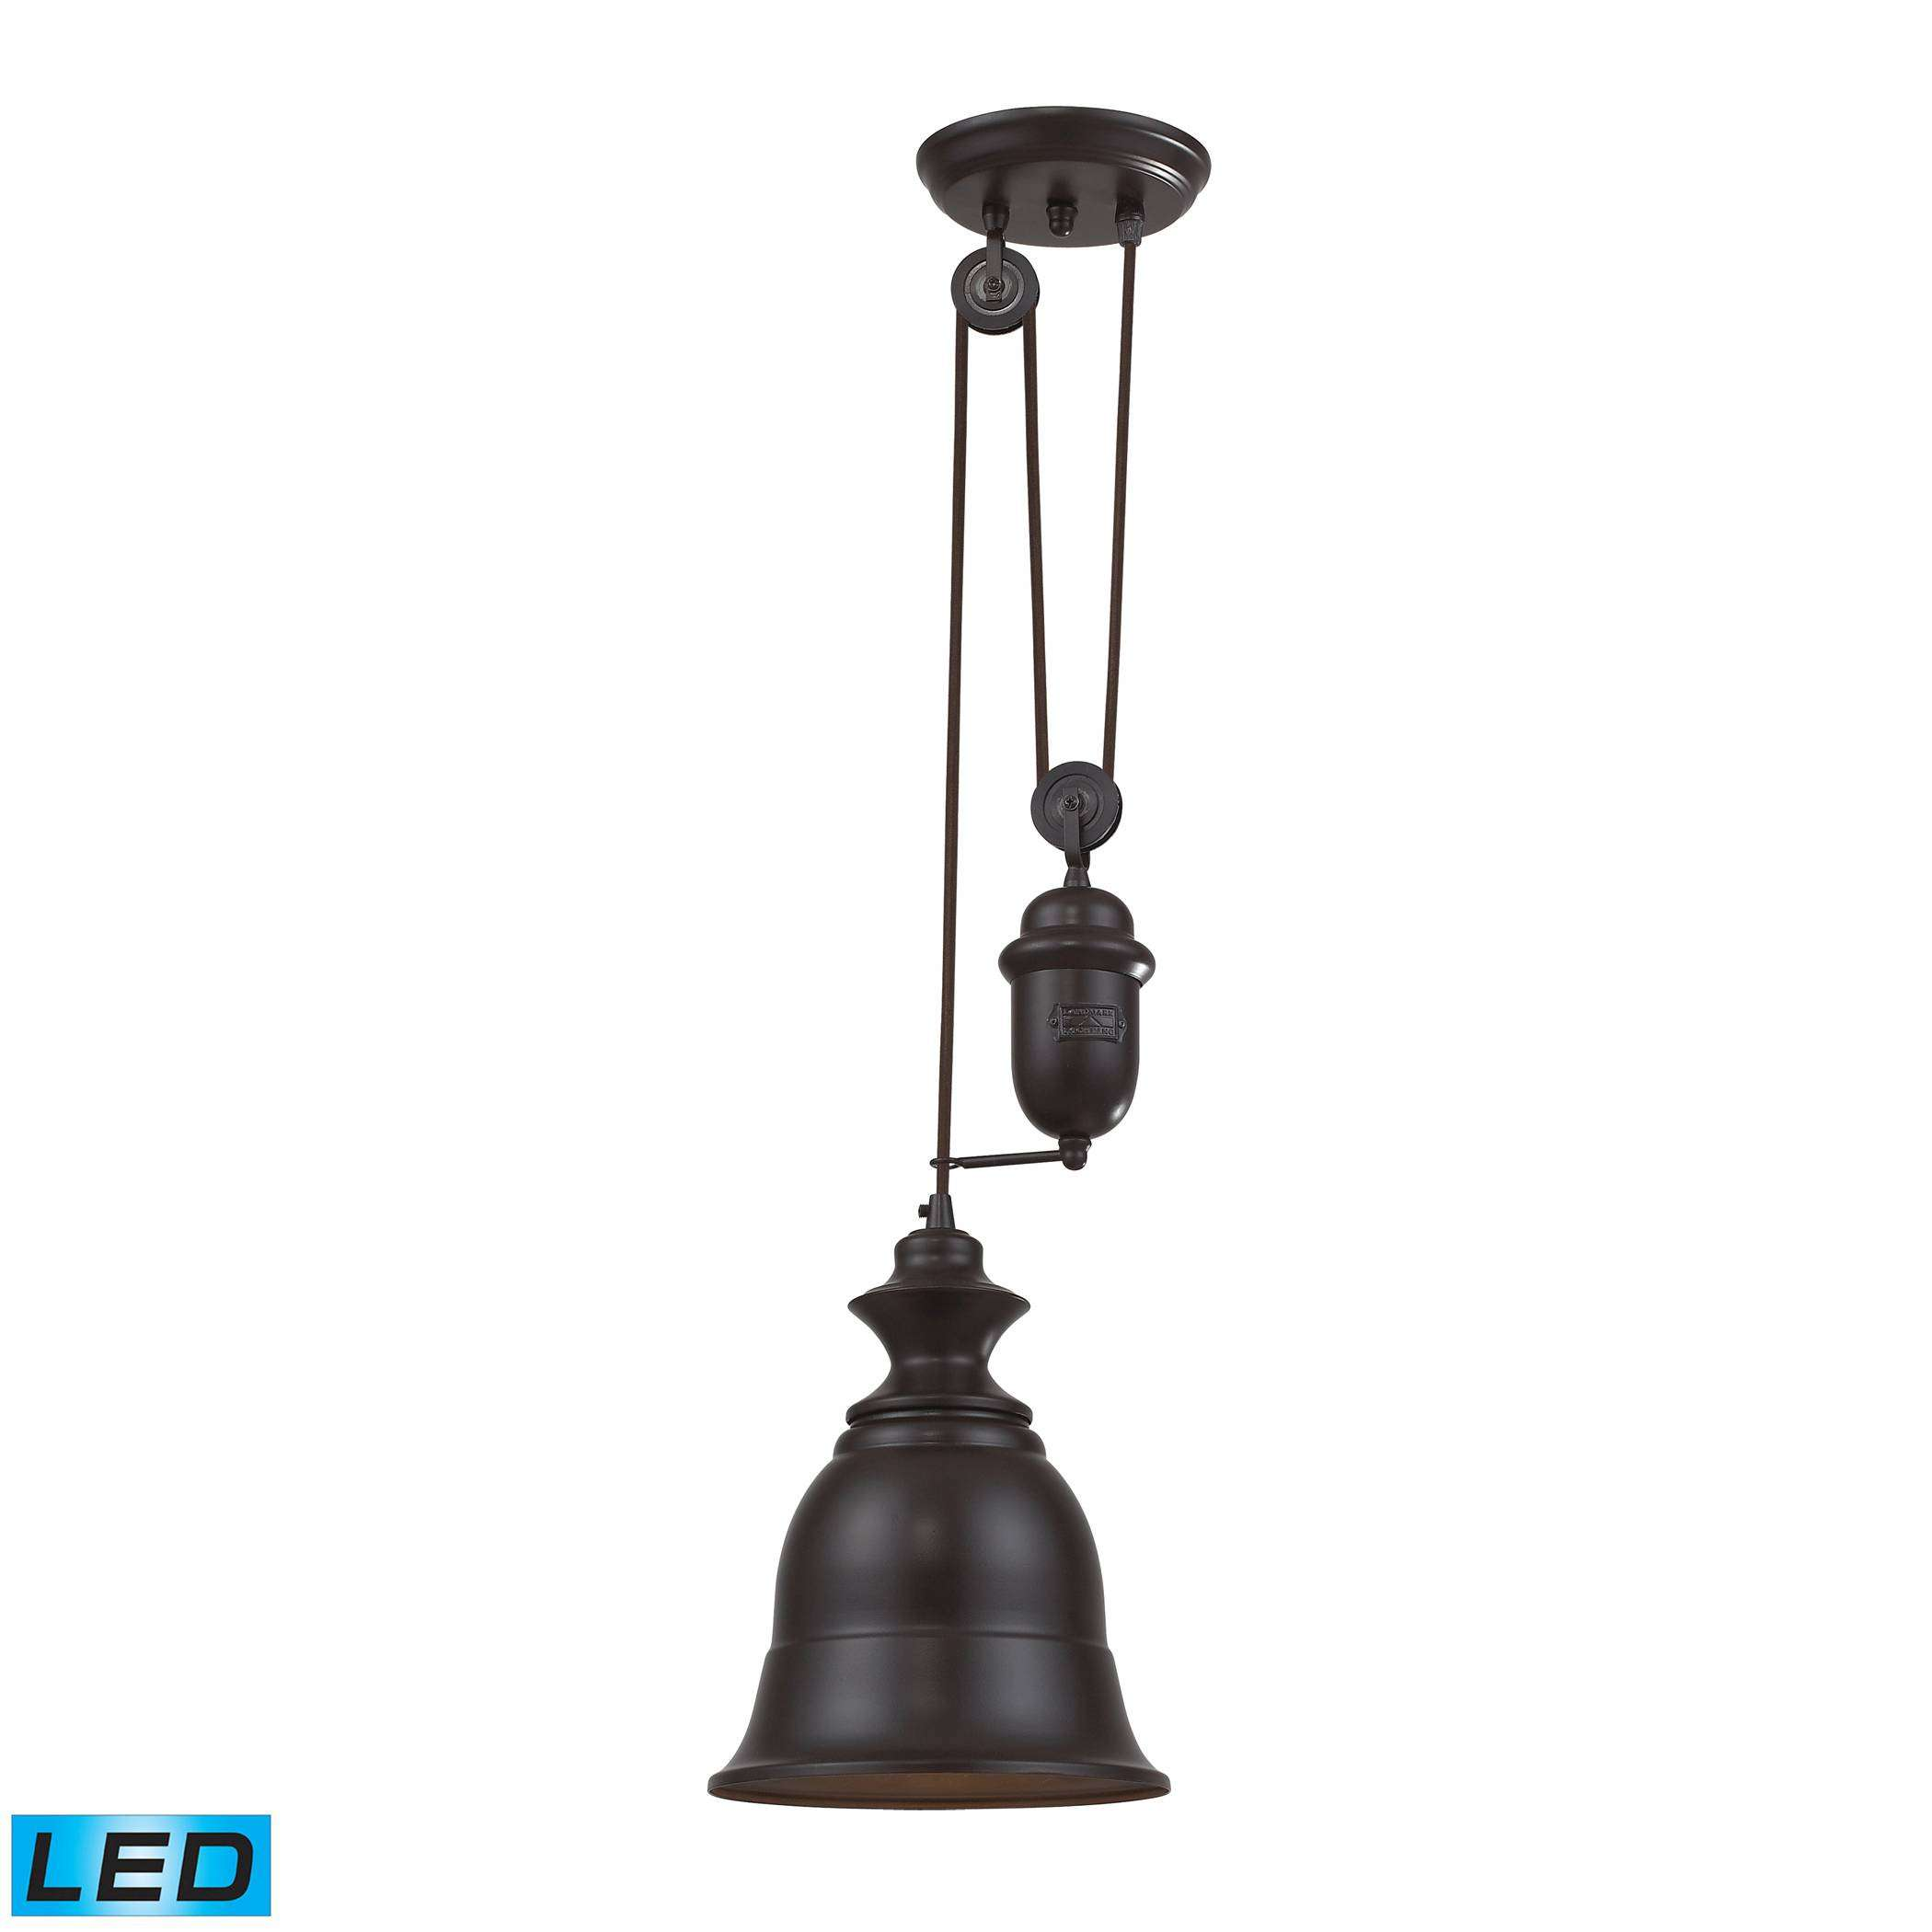 Farmhouse OiLED Bronze Pendant - LED Offering Up To 800 Lumens (60 Watt Equivalent) With Full Ran…